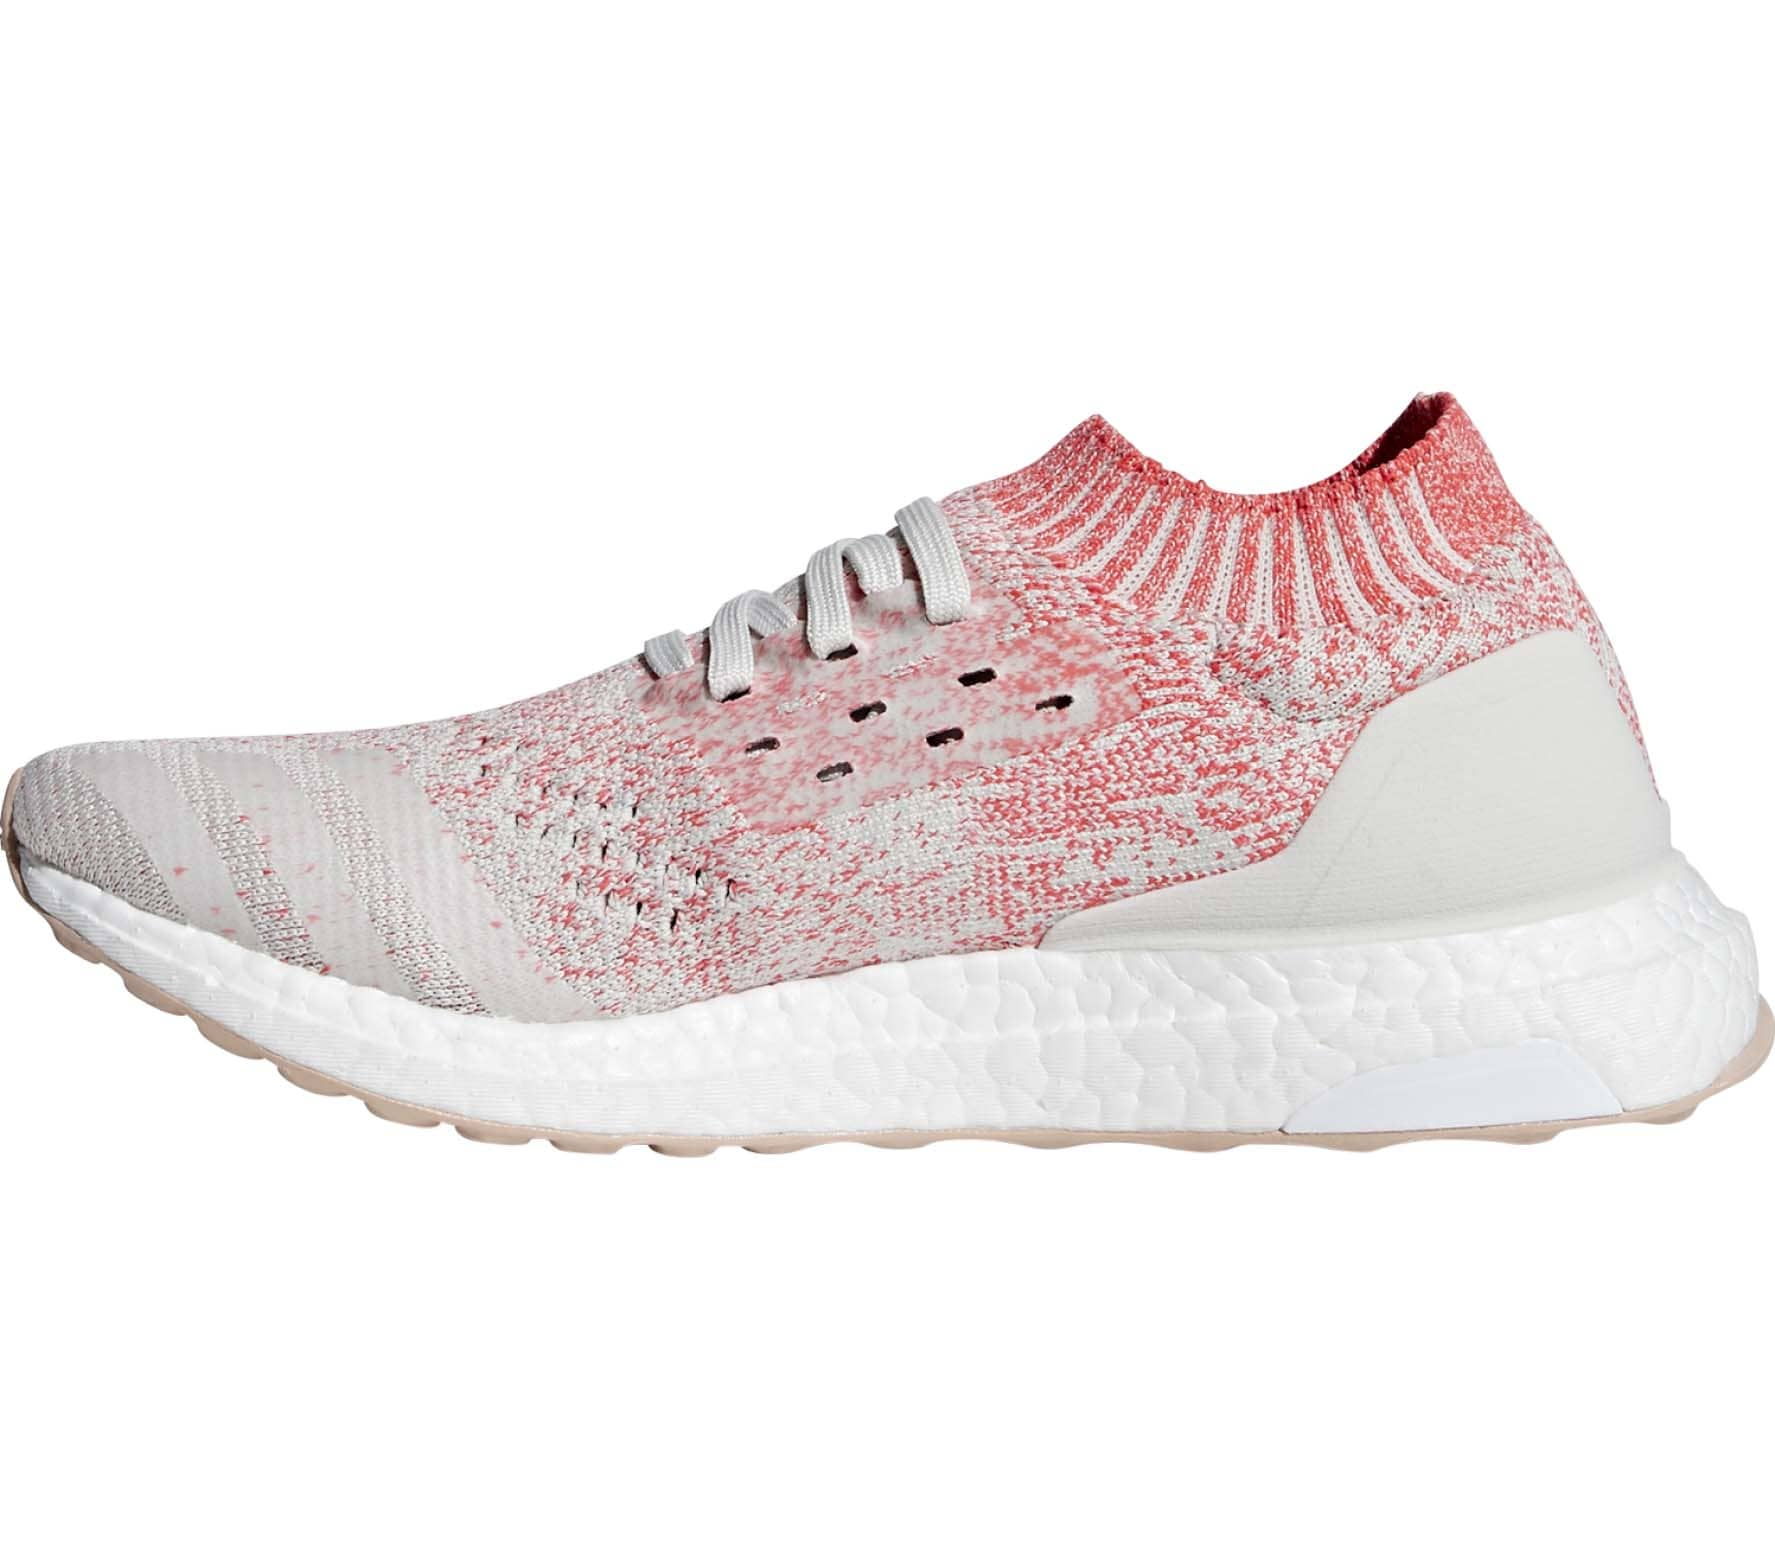 adidas Ultra Boost Uncaged Women